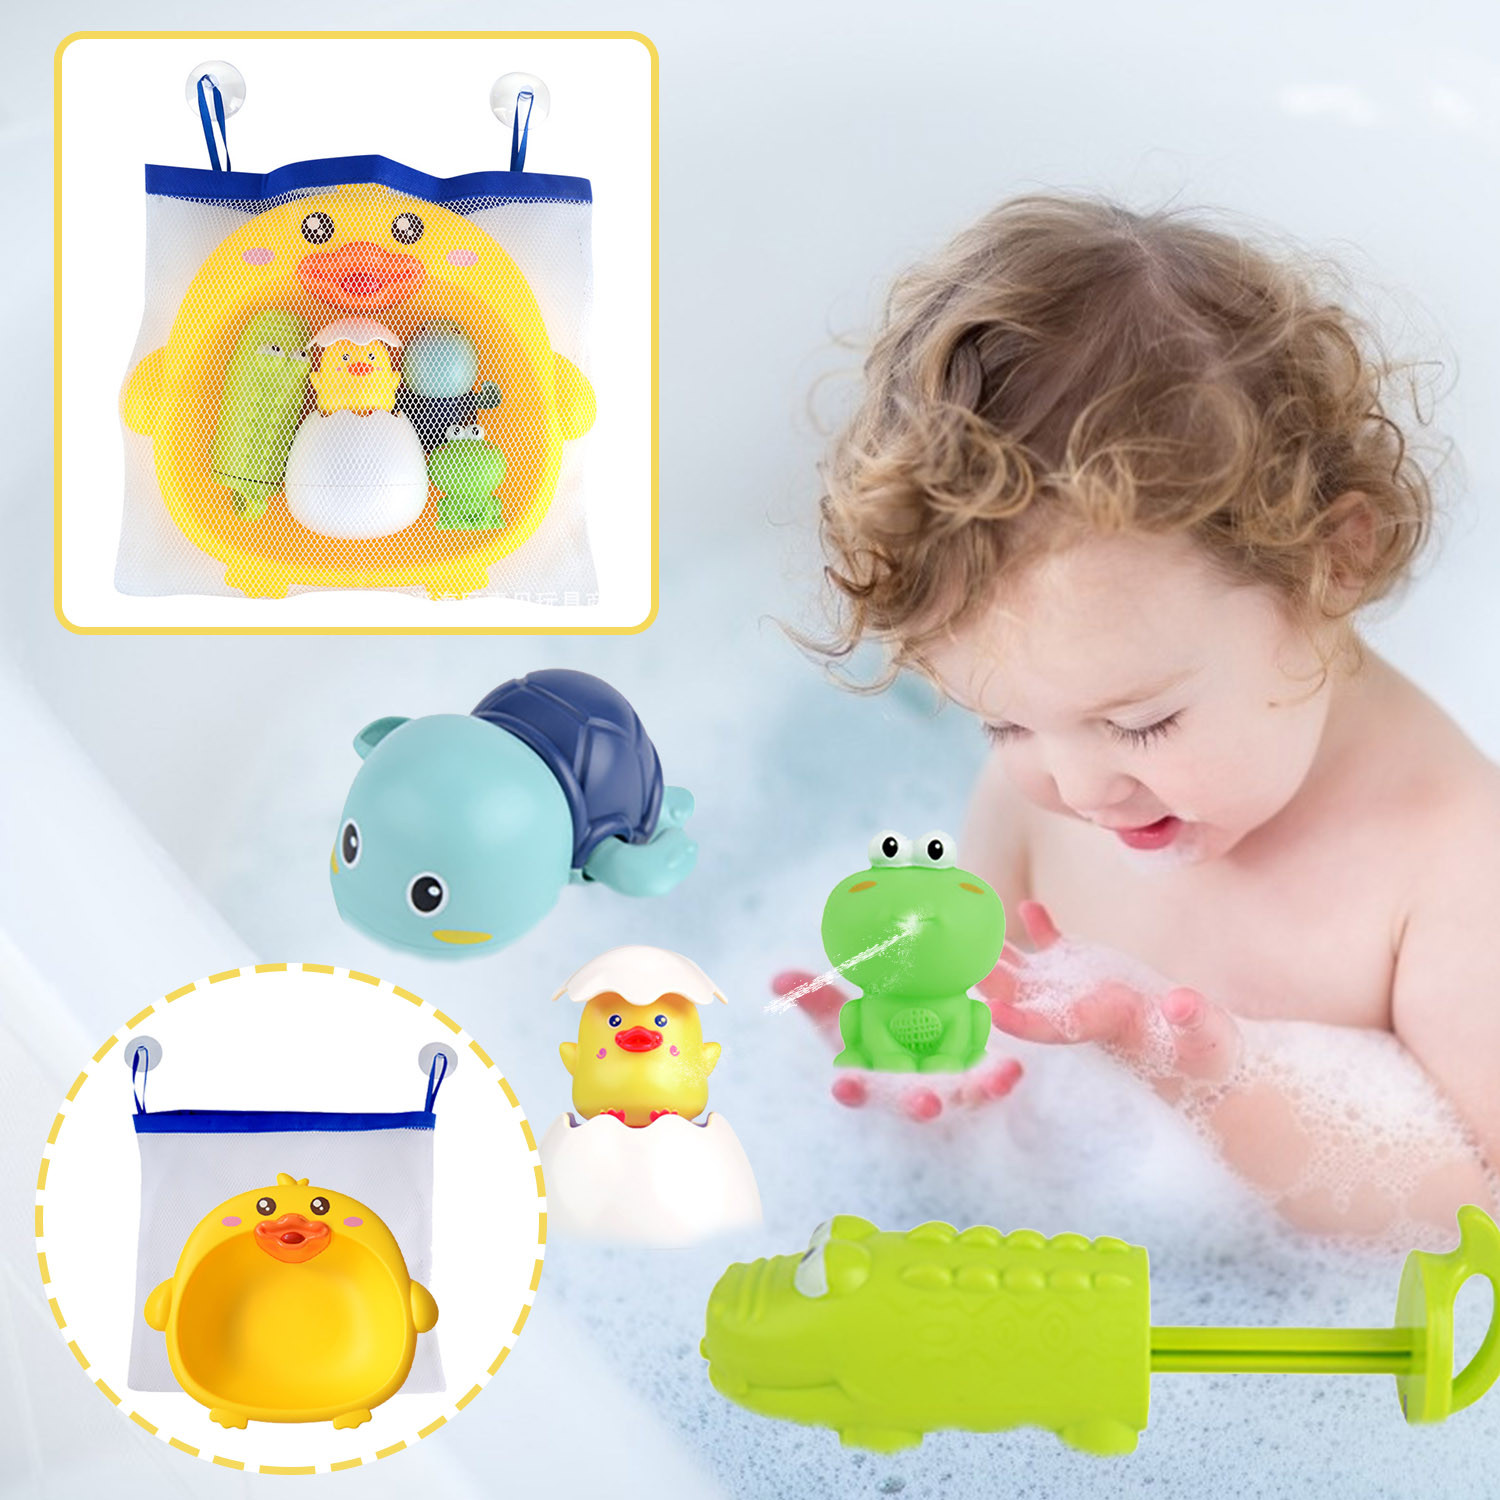 Baby Bath Toys Cute Duck Frog Mesh Net Toy Storage Bag Strong Suction Cups Bath Game Bag Bathroom Organizer Water Toys For Kids